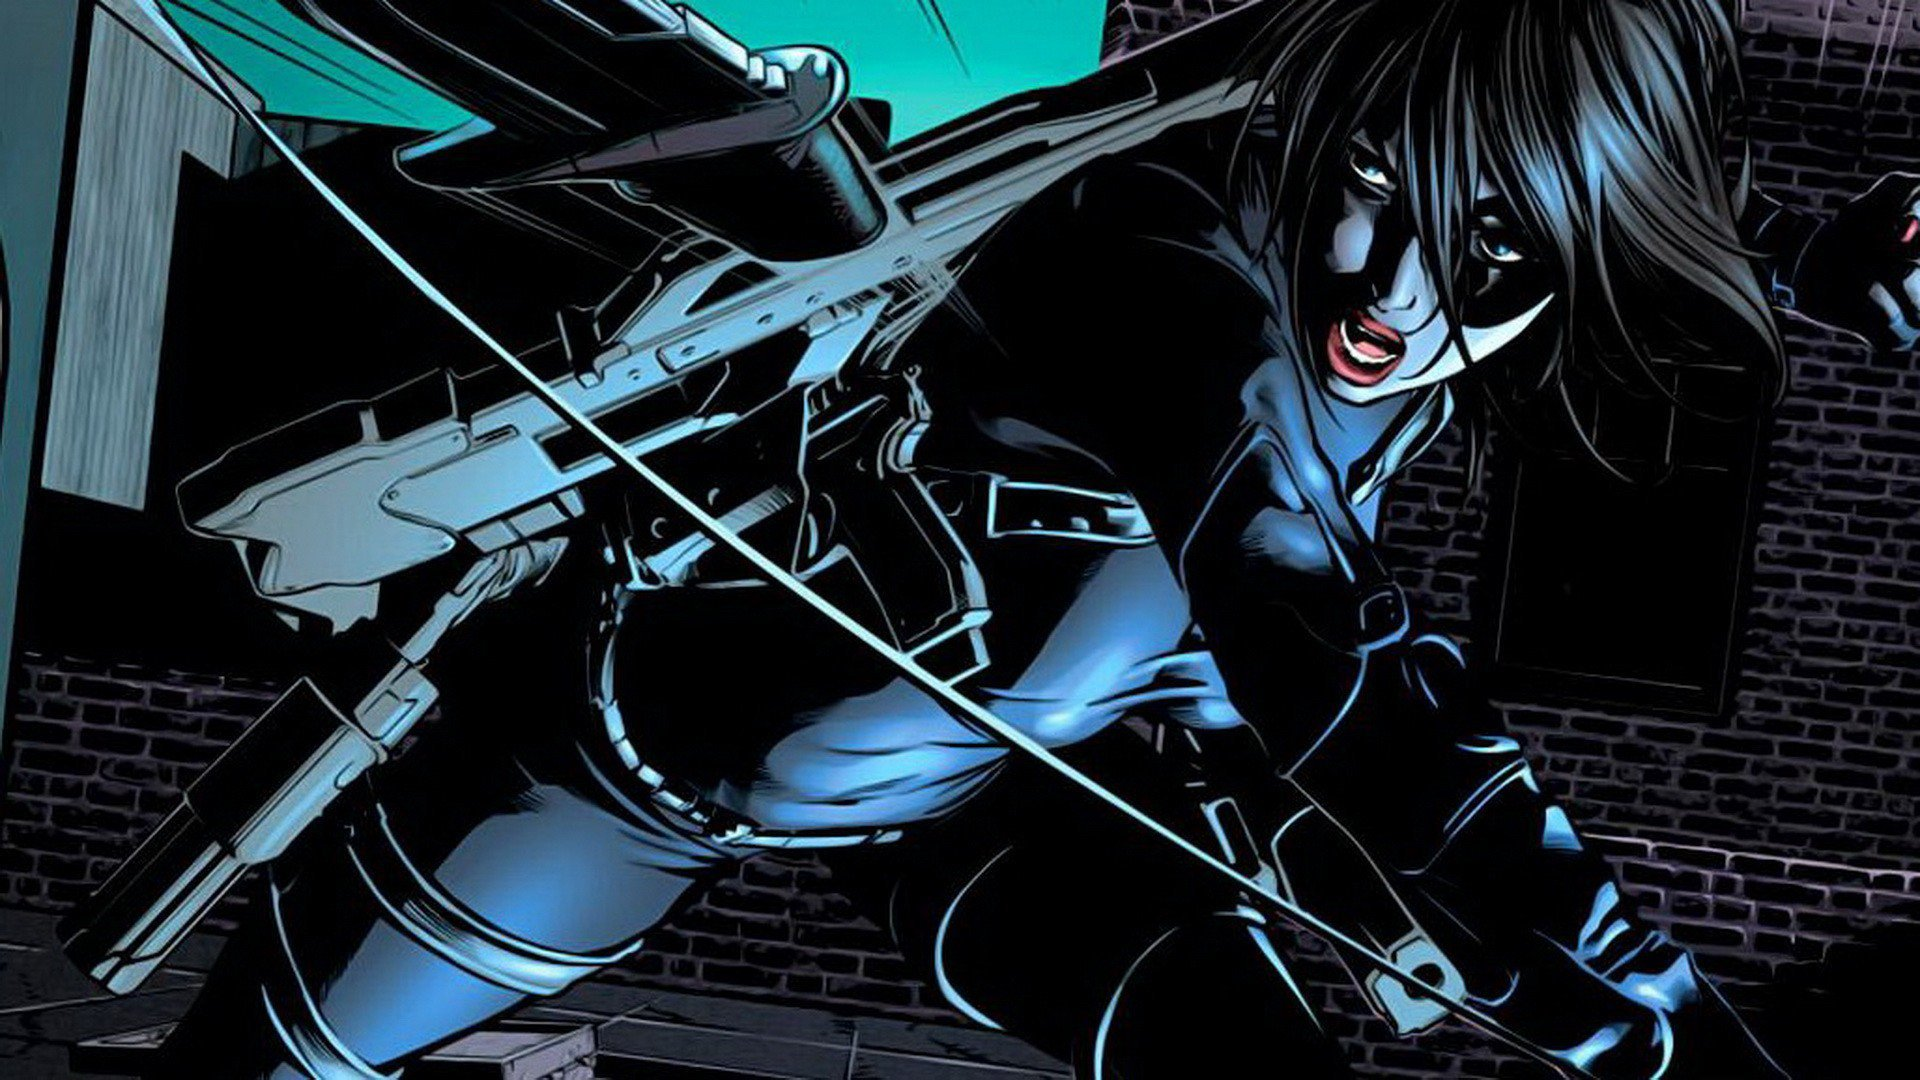 Domino Marvel Wallpapers 1920x1080 Full Hd 1080p HD Wallpapers Download Free Images Wallpaper [1000image.com]